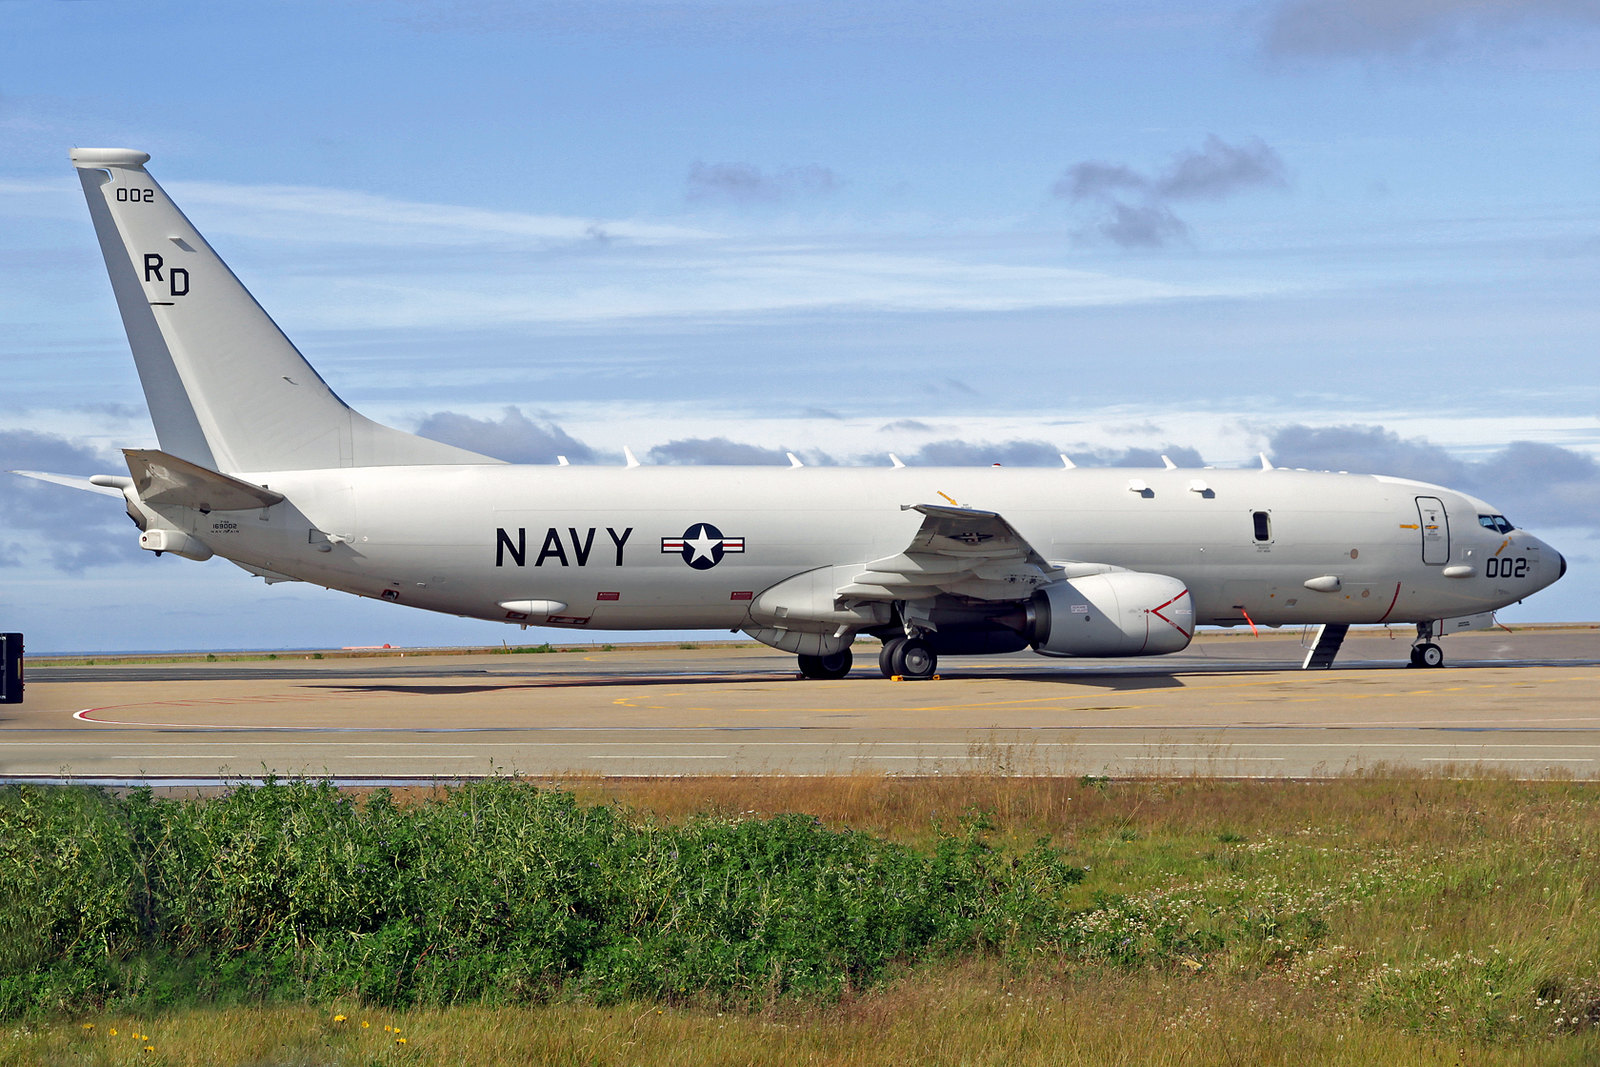 United States Navy Boeing P-8A Poseidon 169002, KEF, 12. August 2020